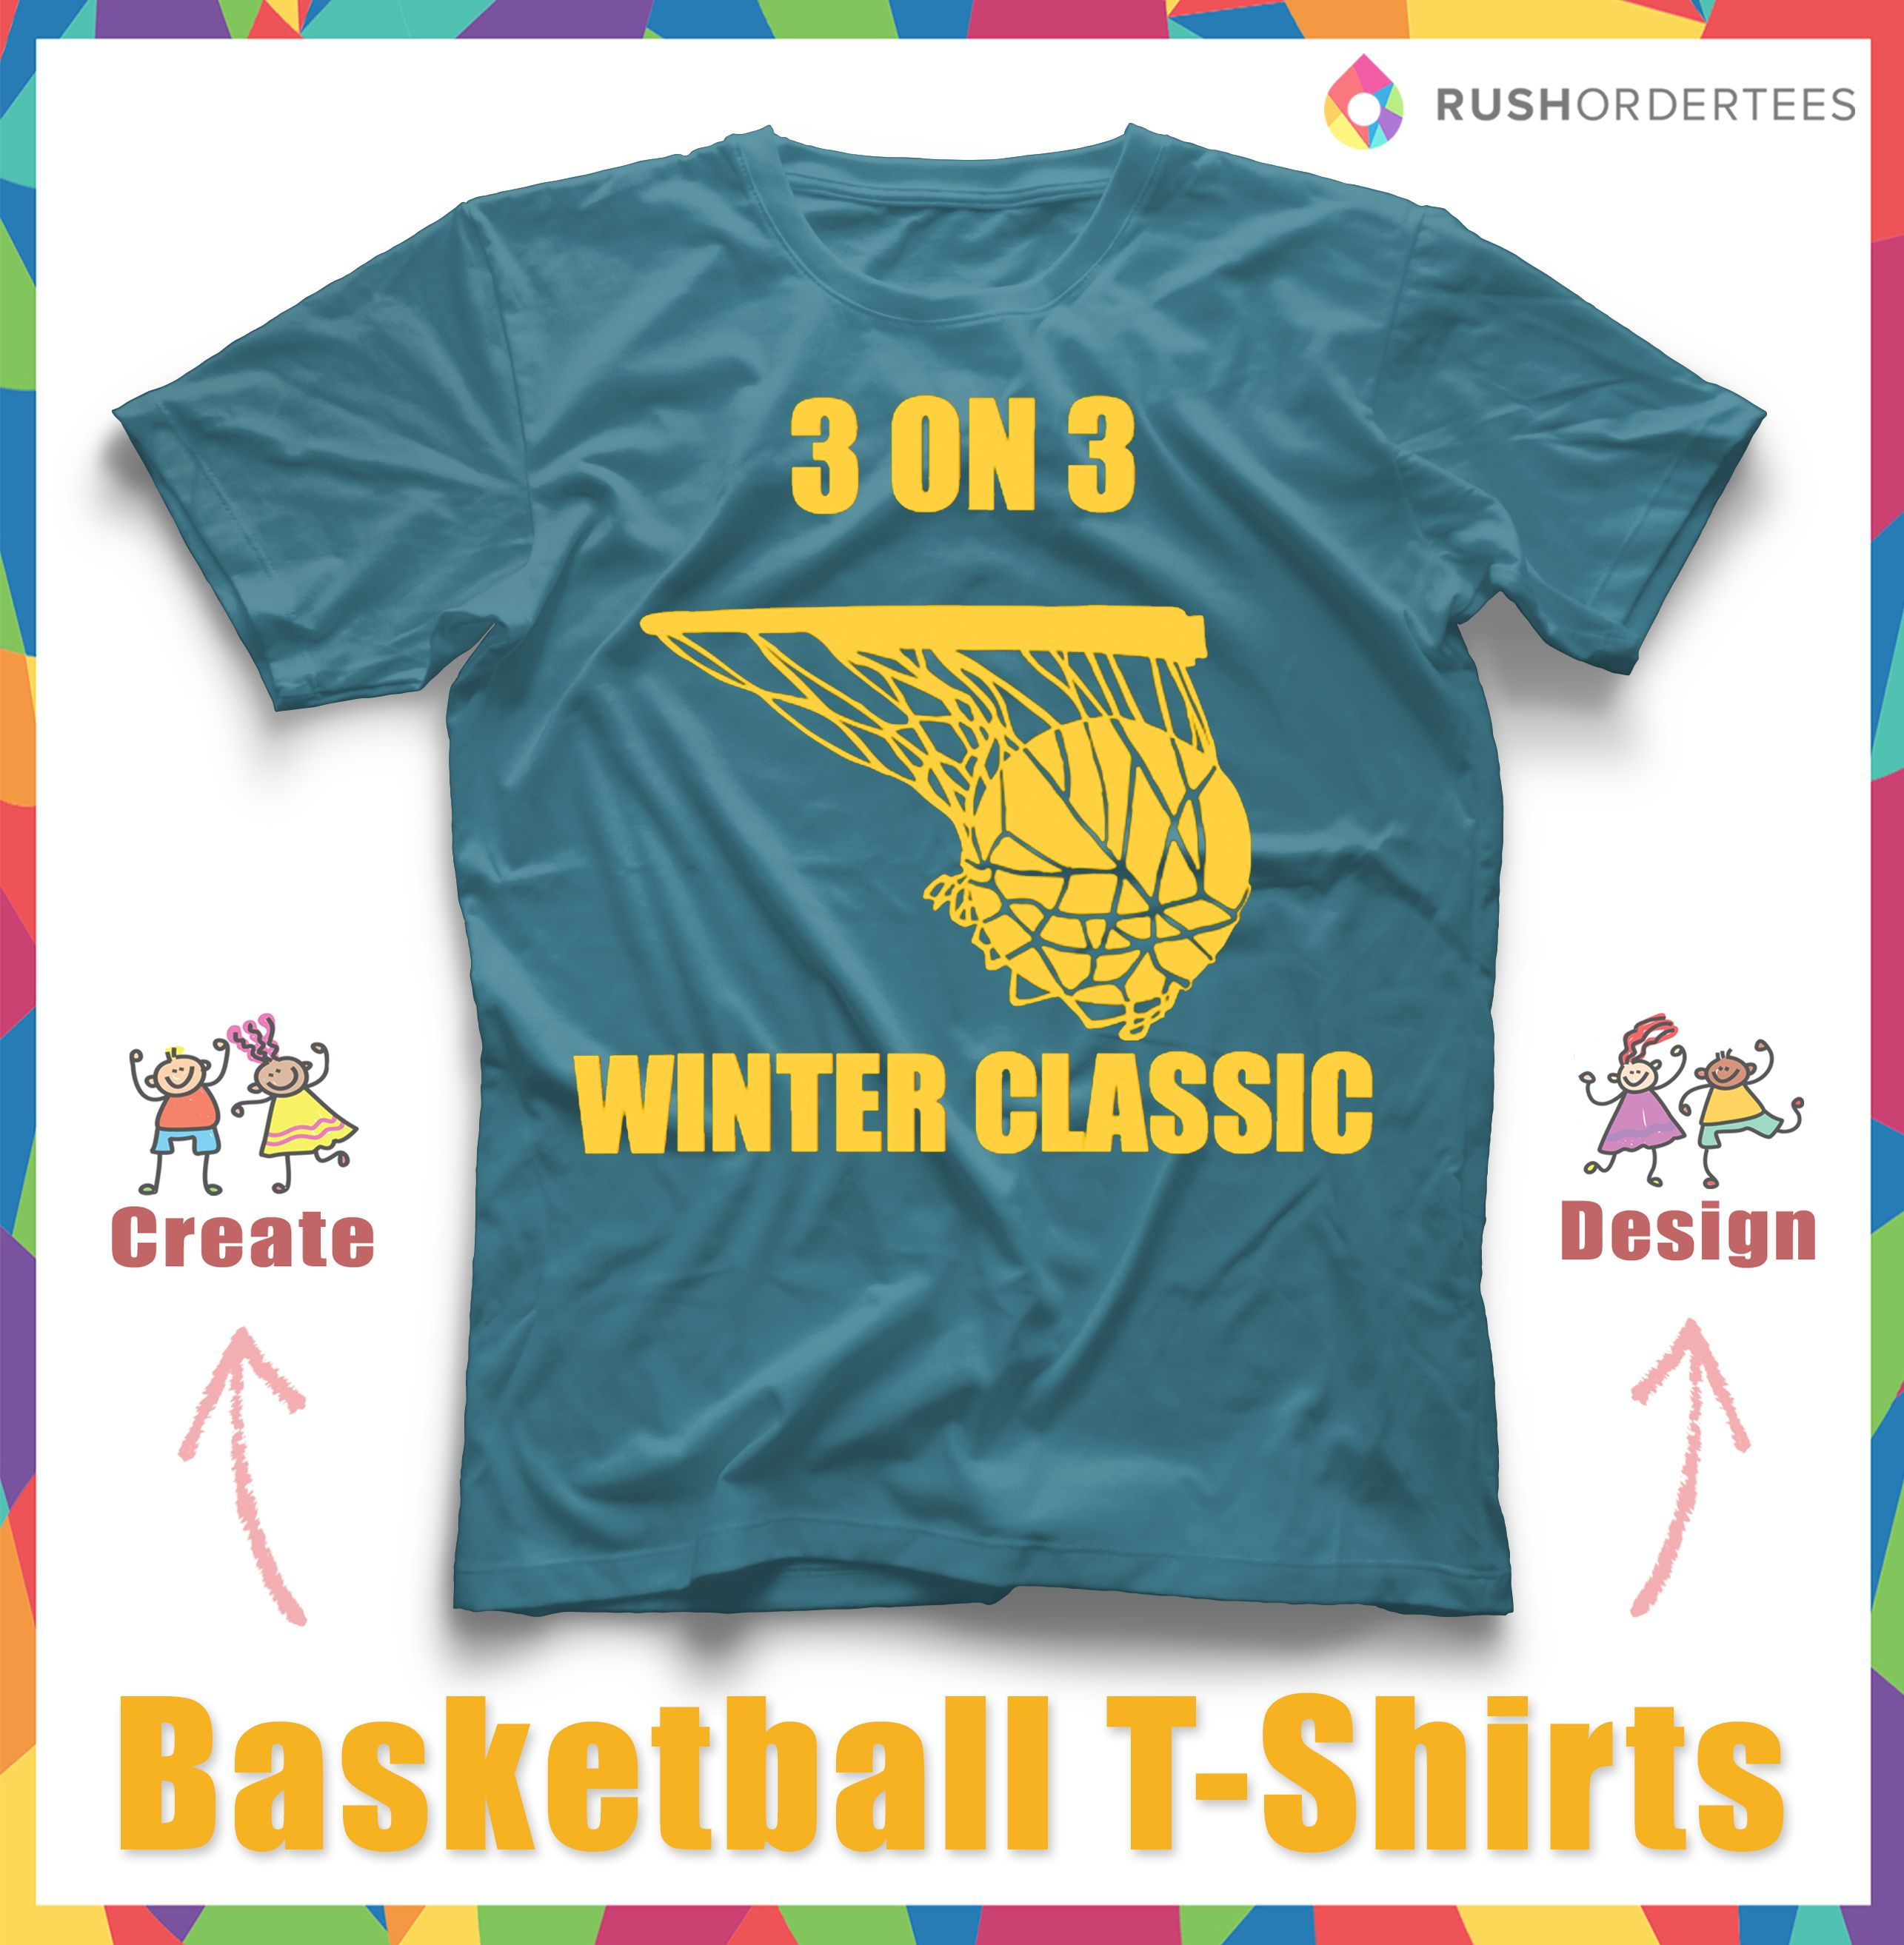 bbee577a7739 Design Your Own Basketball Jersey Shirt - DREAMWORKS